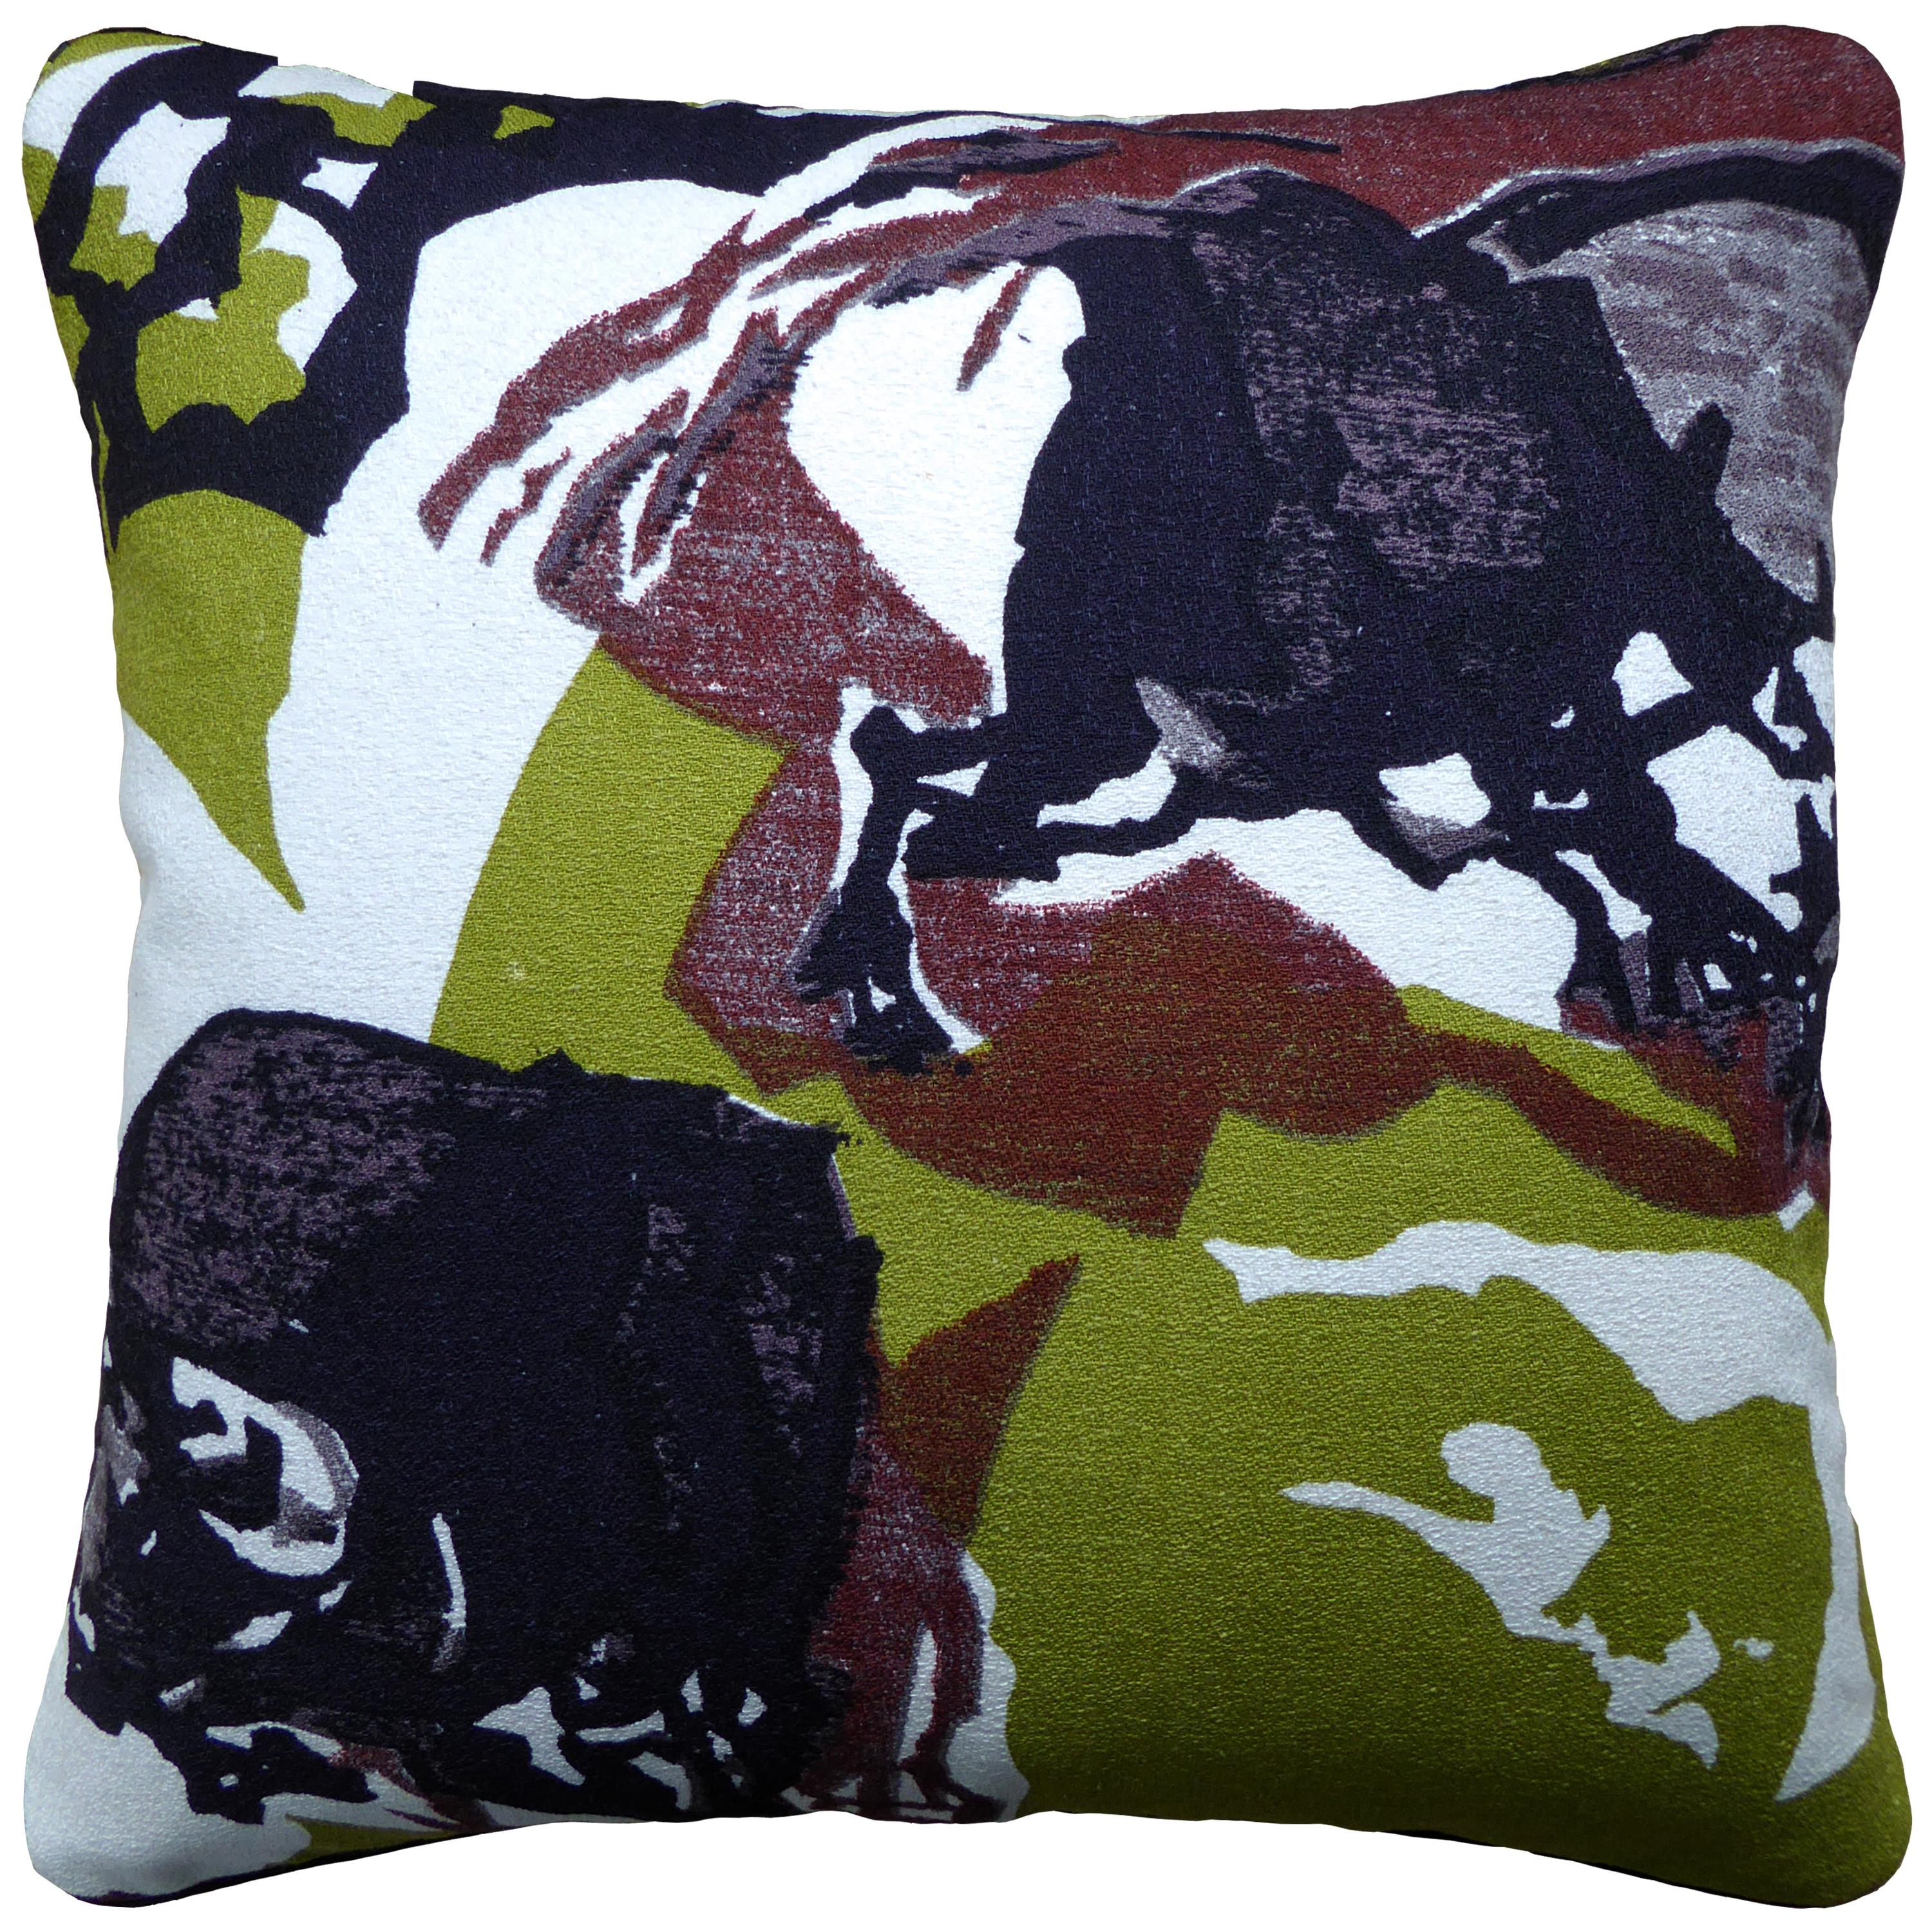 'Vintage Cushions' Luxury Bespoke Pillow 'Midcentury' Made in London